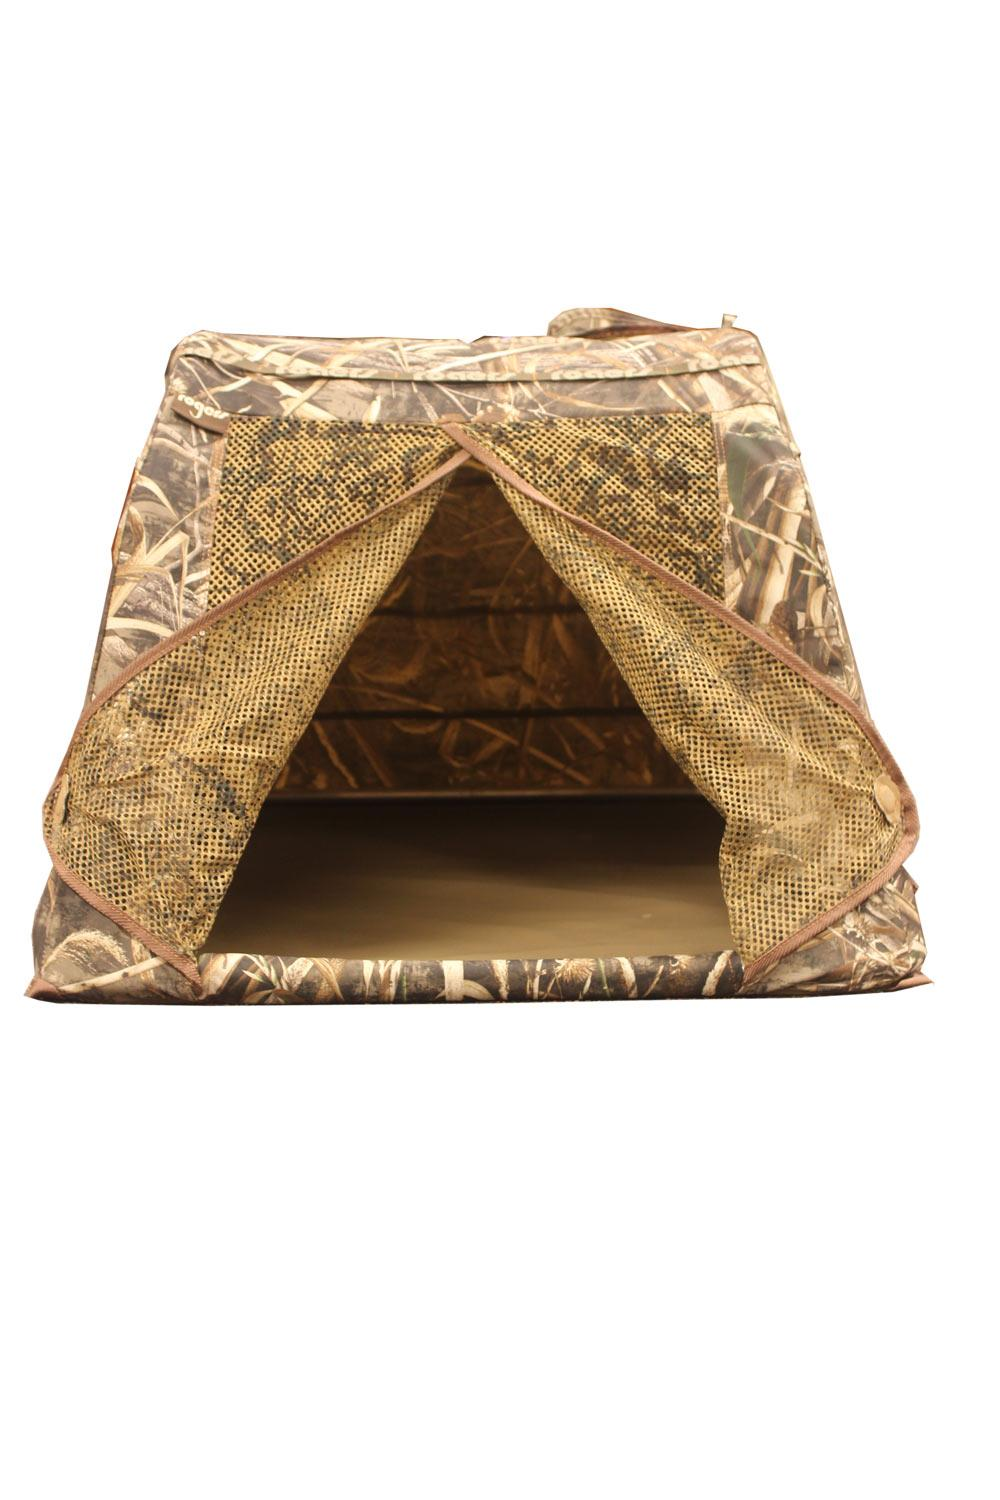 Rogers Pooch Palace XL Dog Blind and Pad Combo_1.jpg